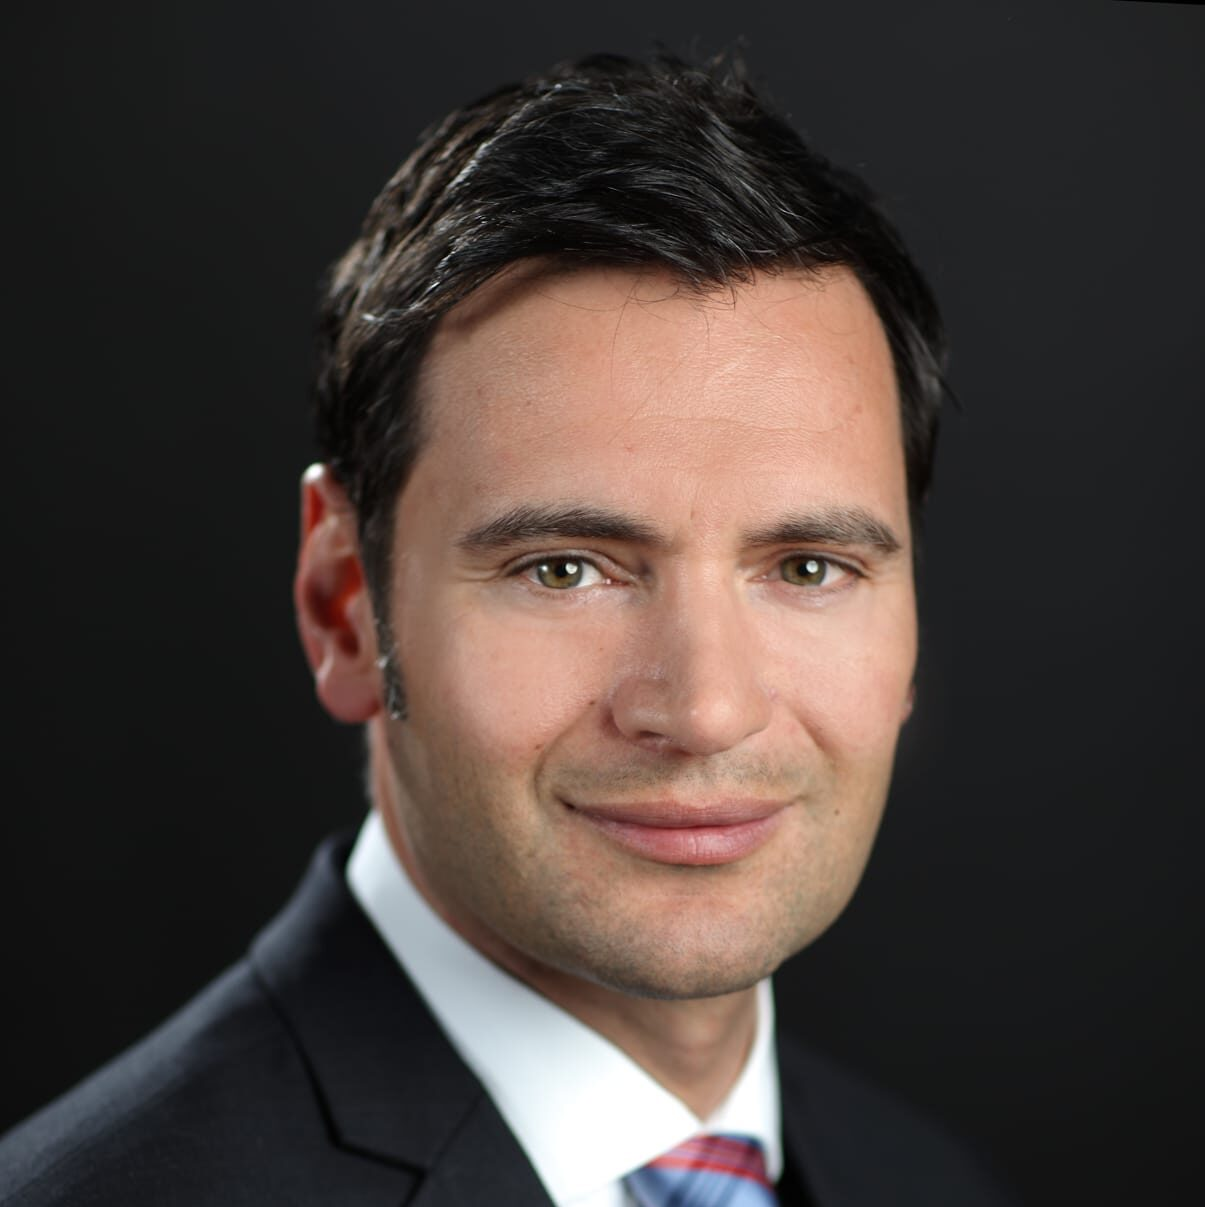 Marco Infuso